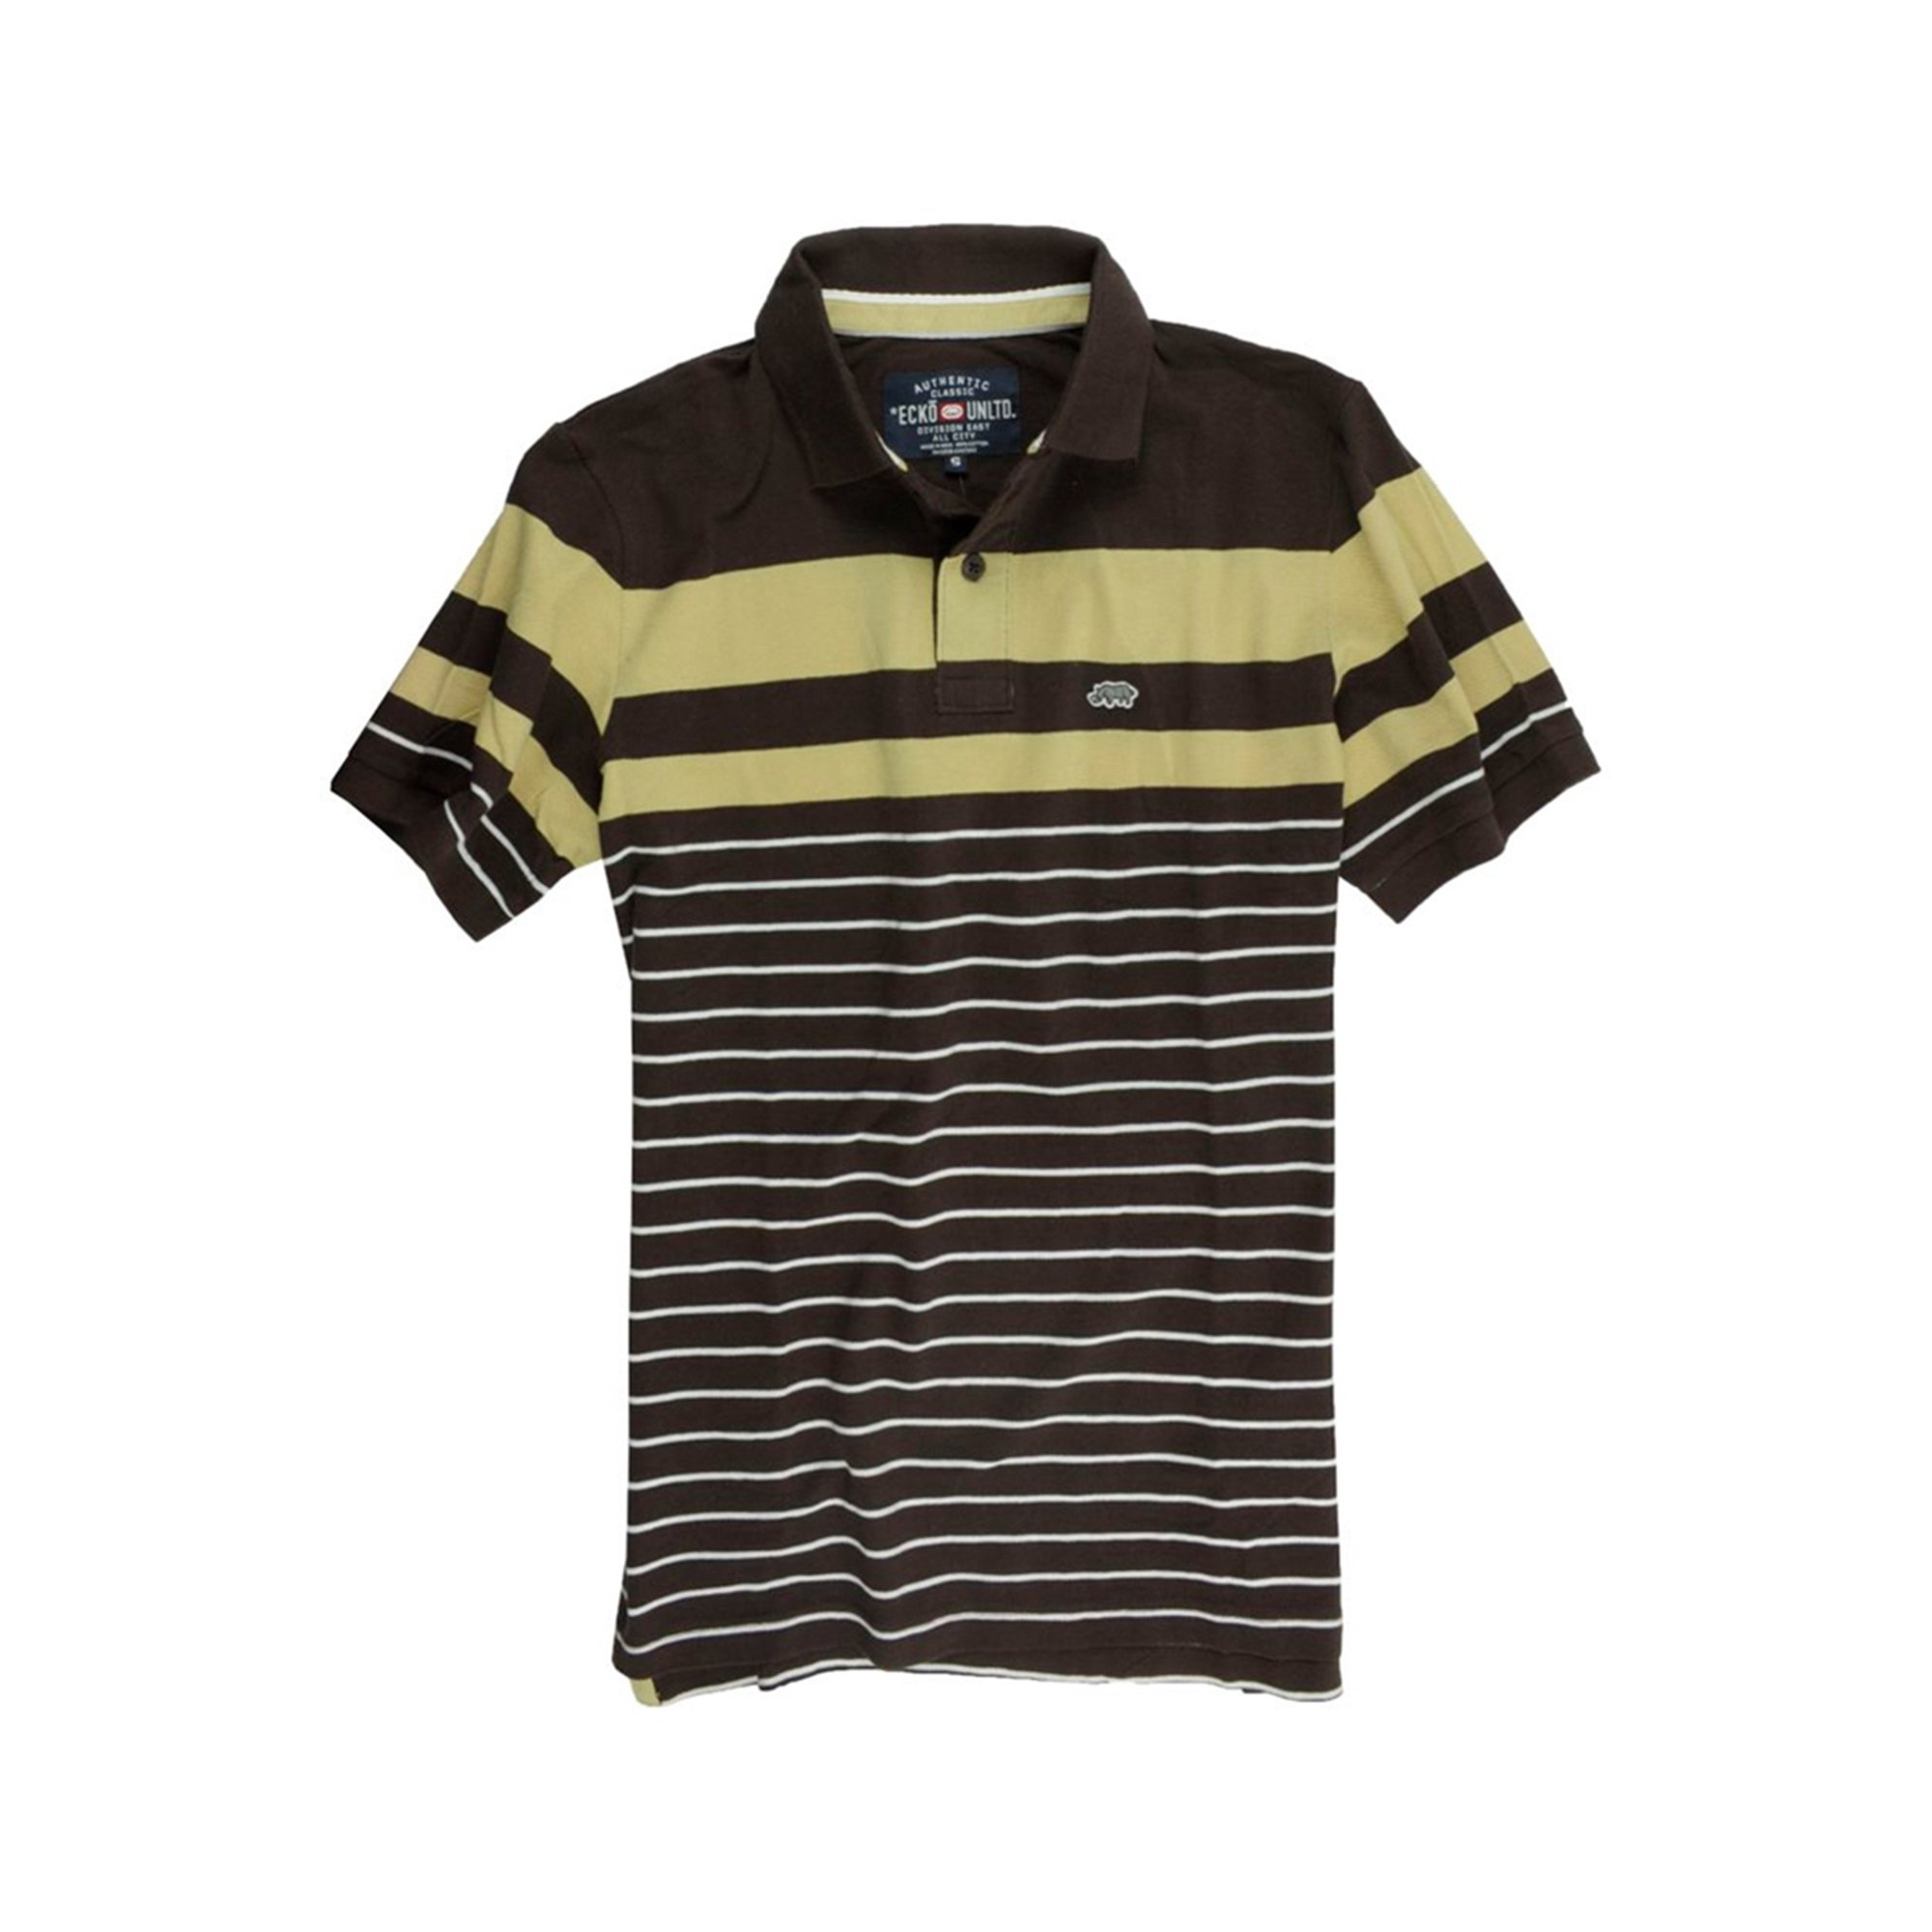 3ce61a5a4 Ecko Unlimited Polo Shirts « Alzheimer's Network of Oregon